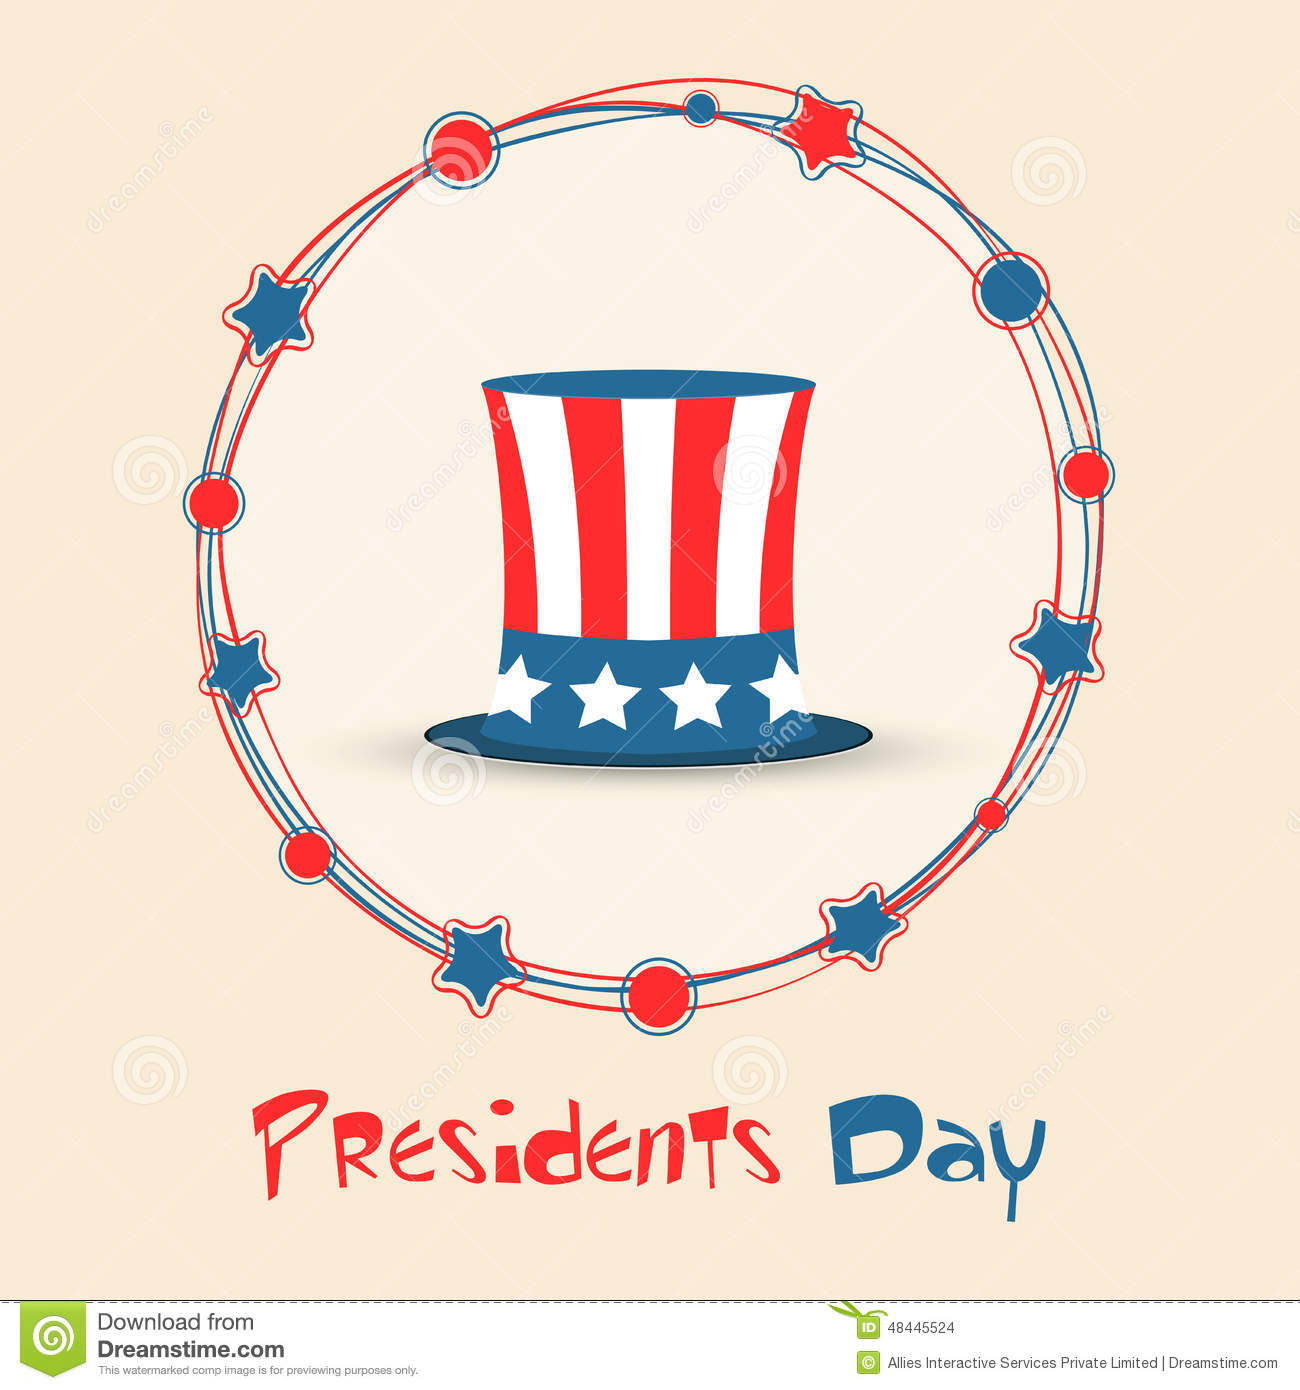 Extended Presidents Day: American Presidents Day Celebration Concept. Stock